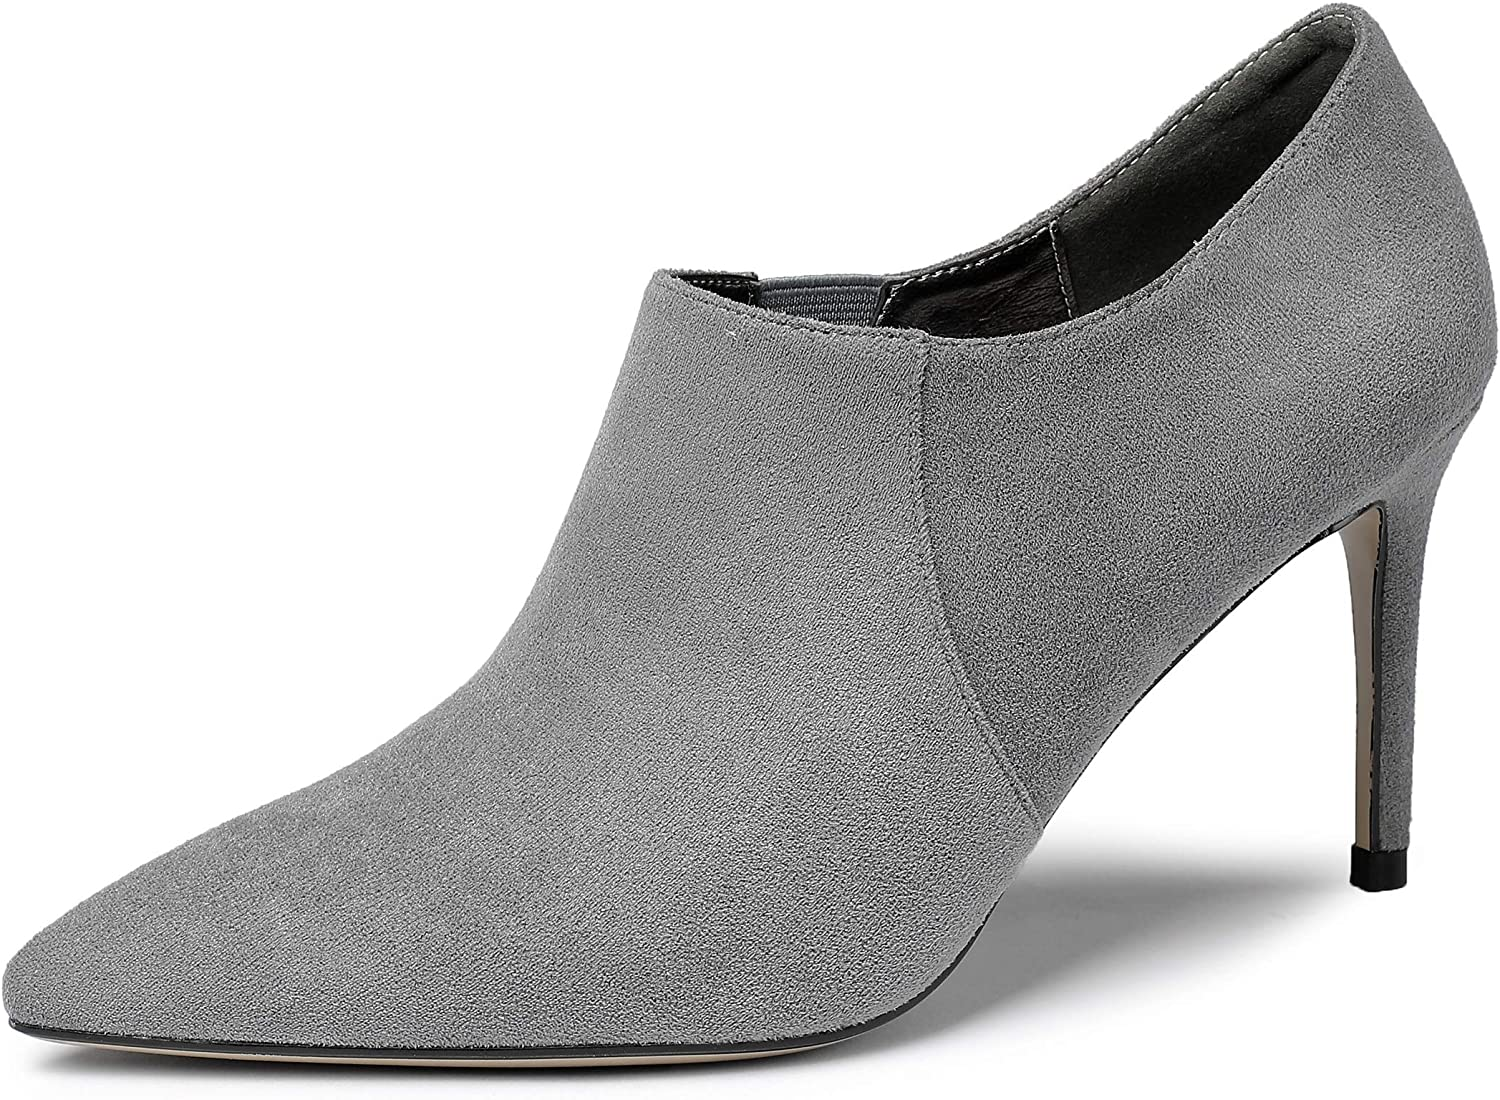 YODEKS 1 year warranty Women's Pointed Toe Max 77% OFF Ankle Boots 8CM High S Heels Stiletto